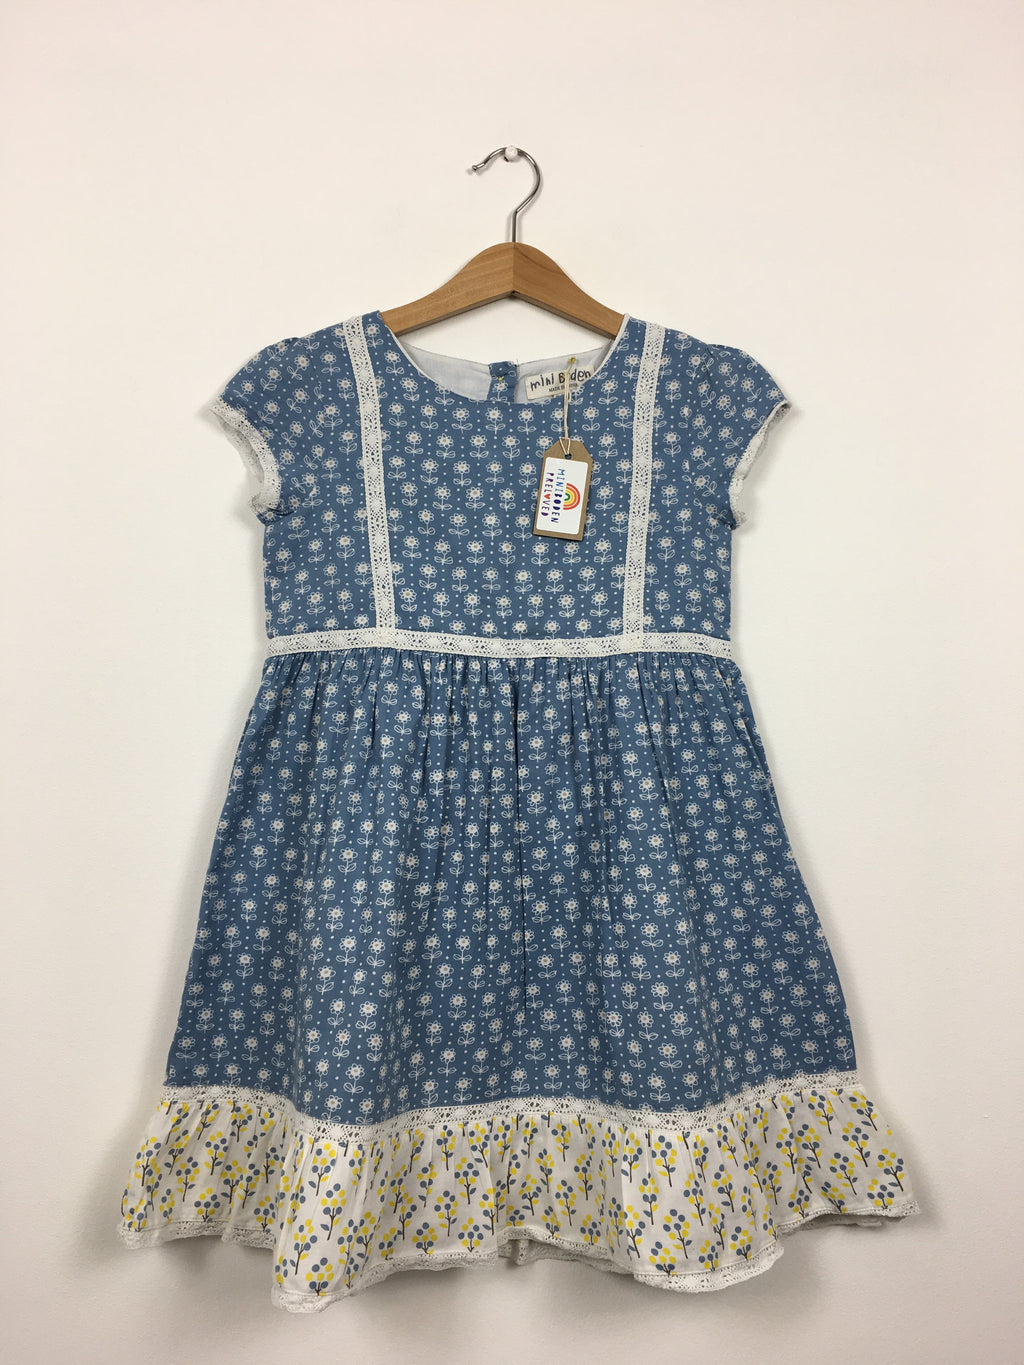 Blue Floral Dress (7-8 Years)